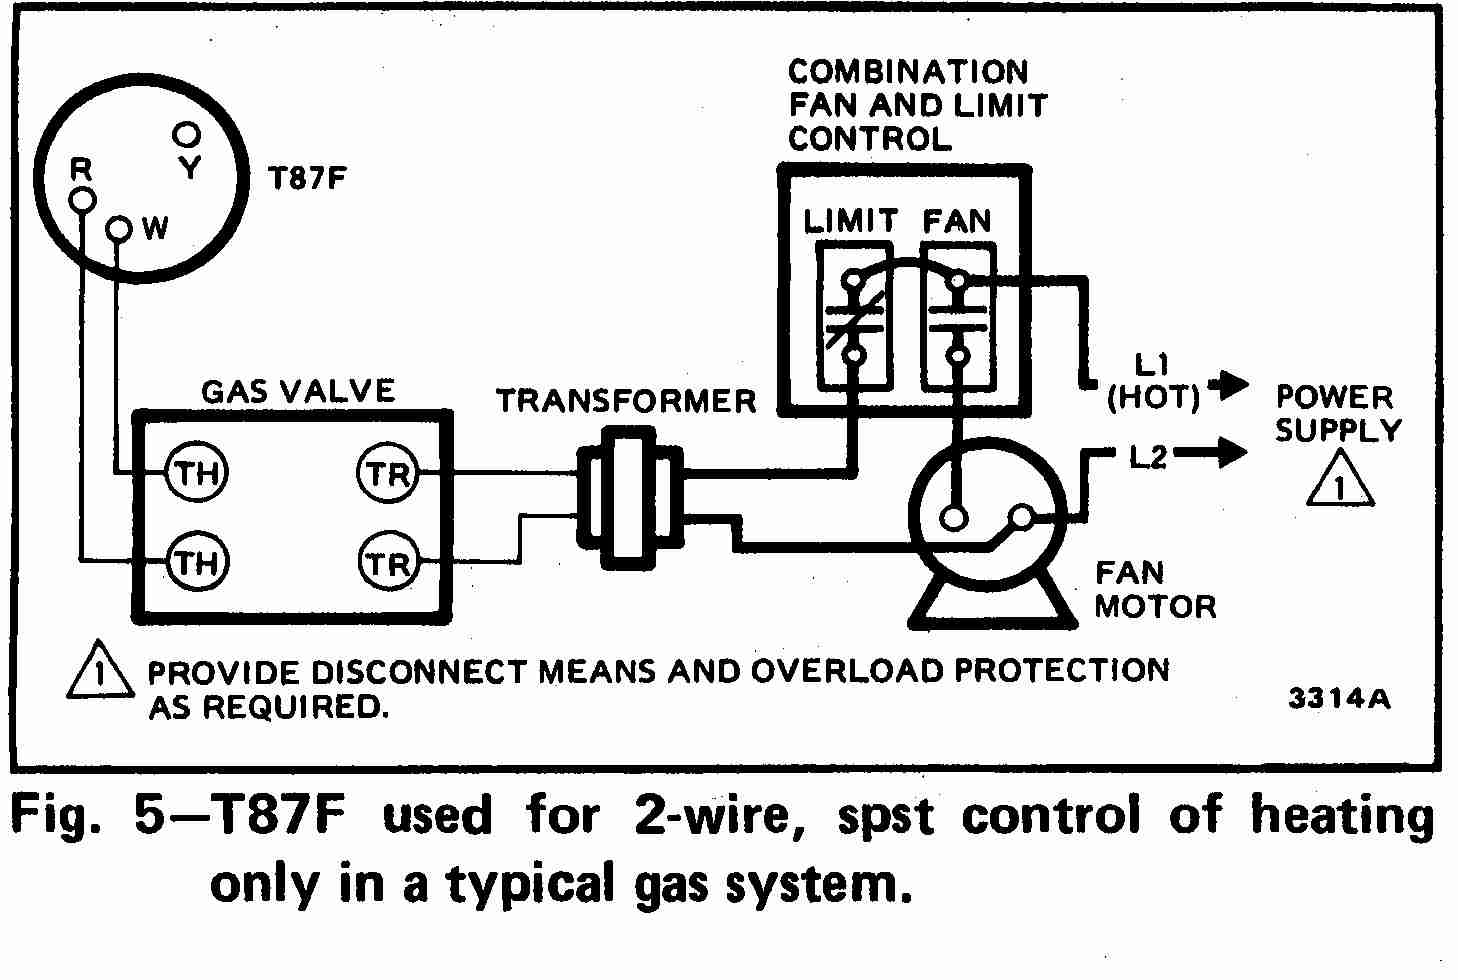 TT_T87F_0002_2Wg_DJF dayton thermostat wiring diagram rv furnace wiring diagrams LuxPro Thermostat Manual at readyjetset.co